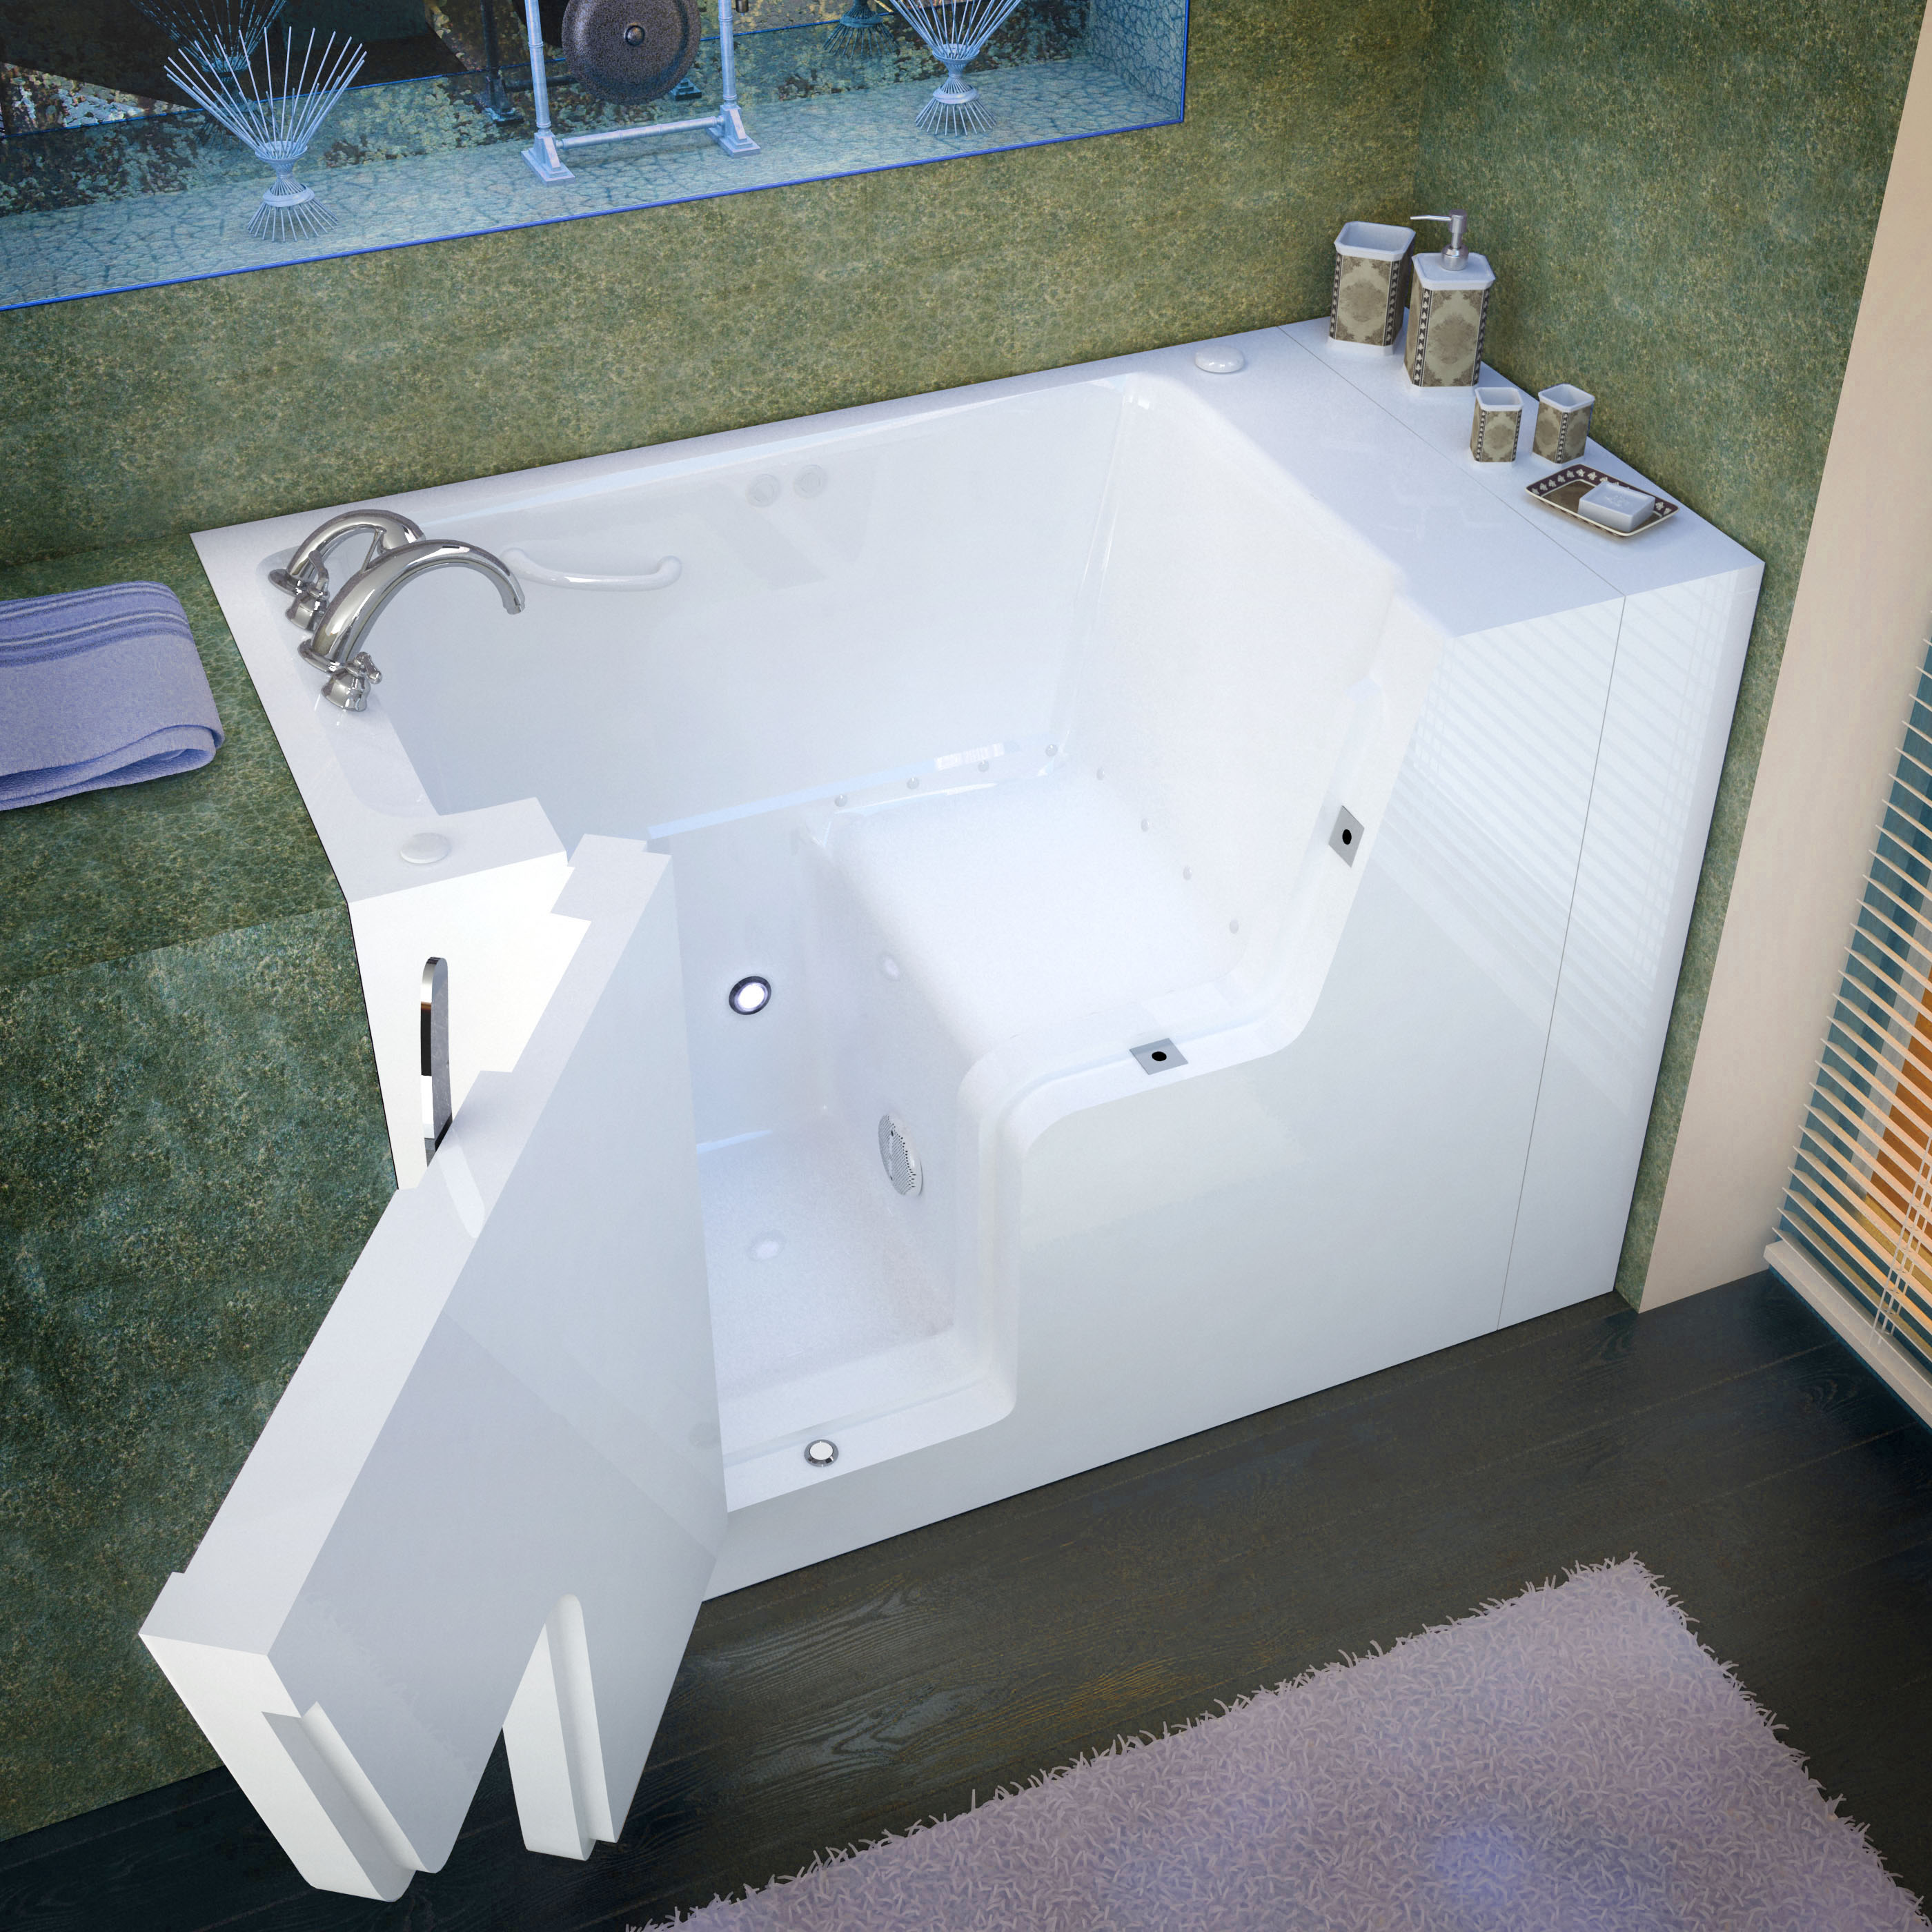 29x53 Left Drain White Air Jetted Wheelchair Accessible Walk-In Bathtub